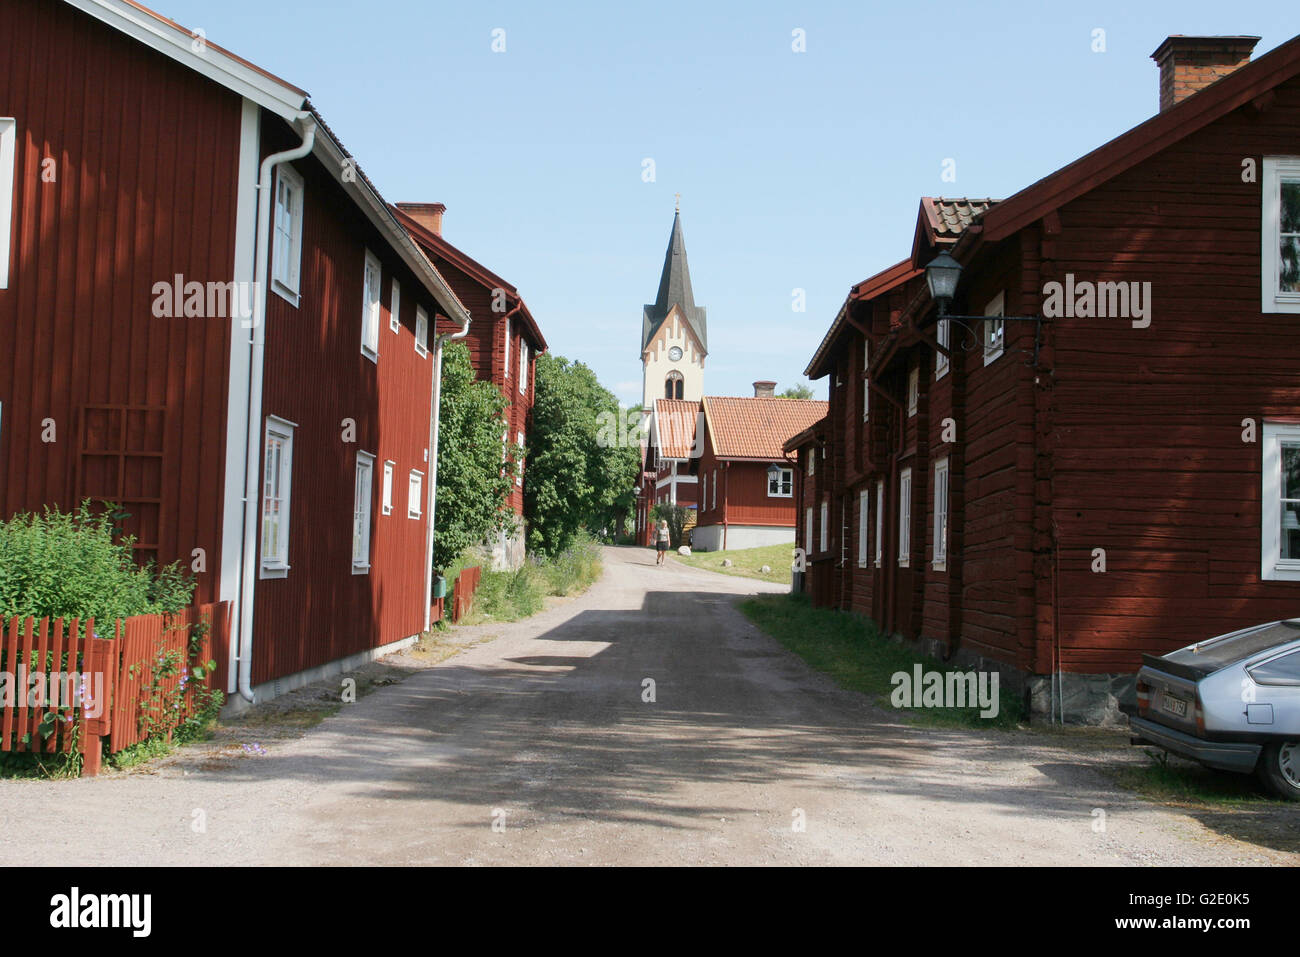 Ironworks workers old wooden houses - Stock Image